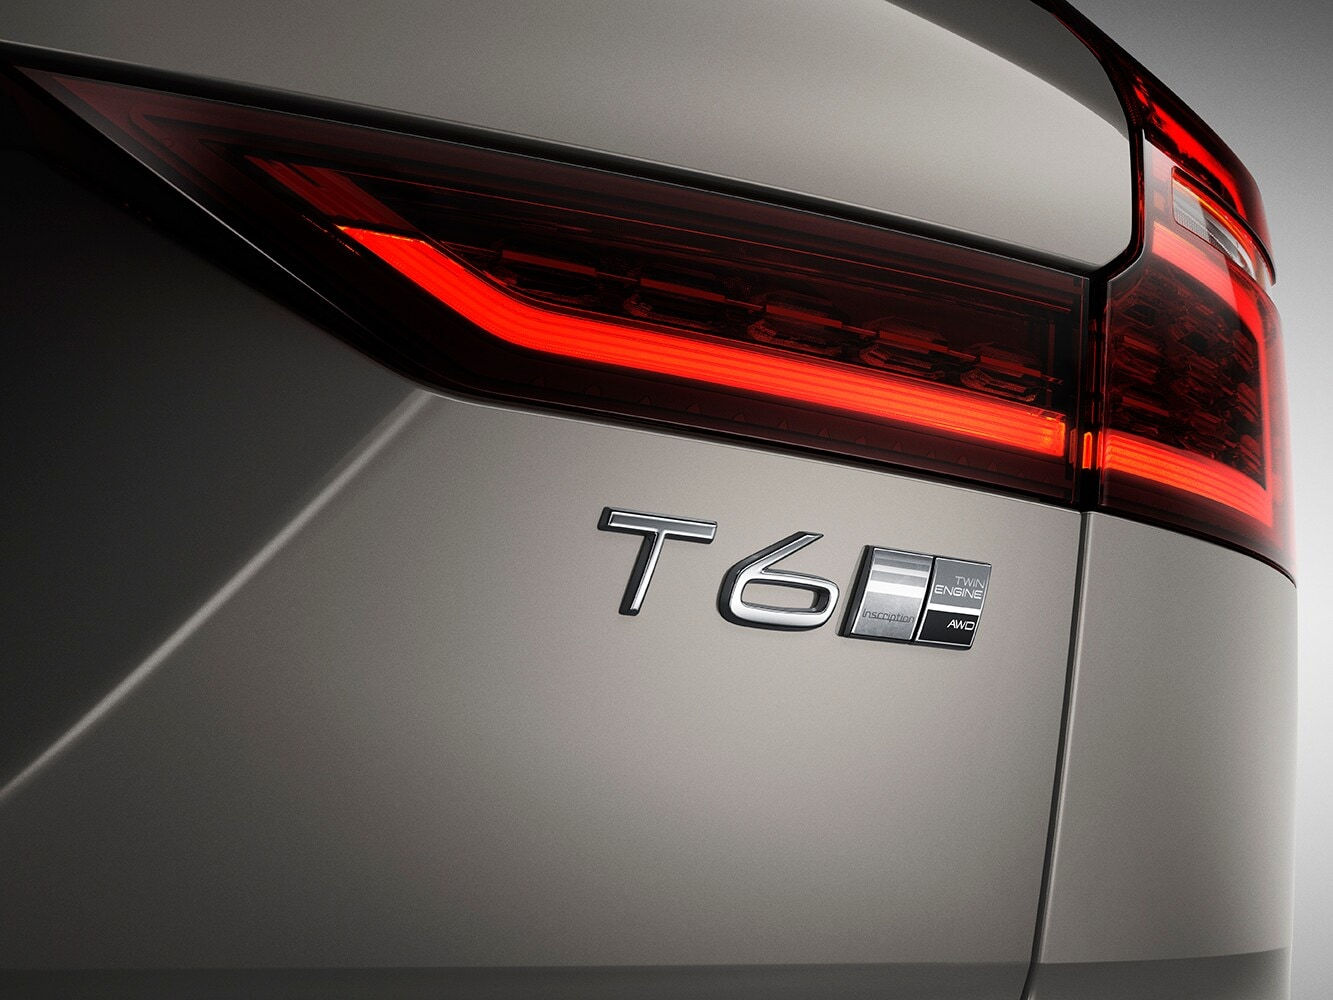 A close up of the T6 badge on a Volvo V60